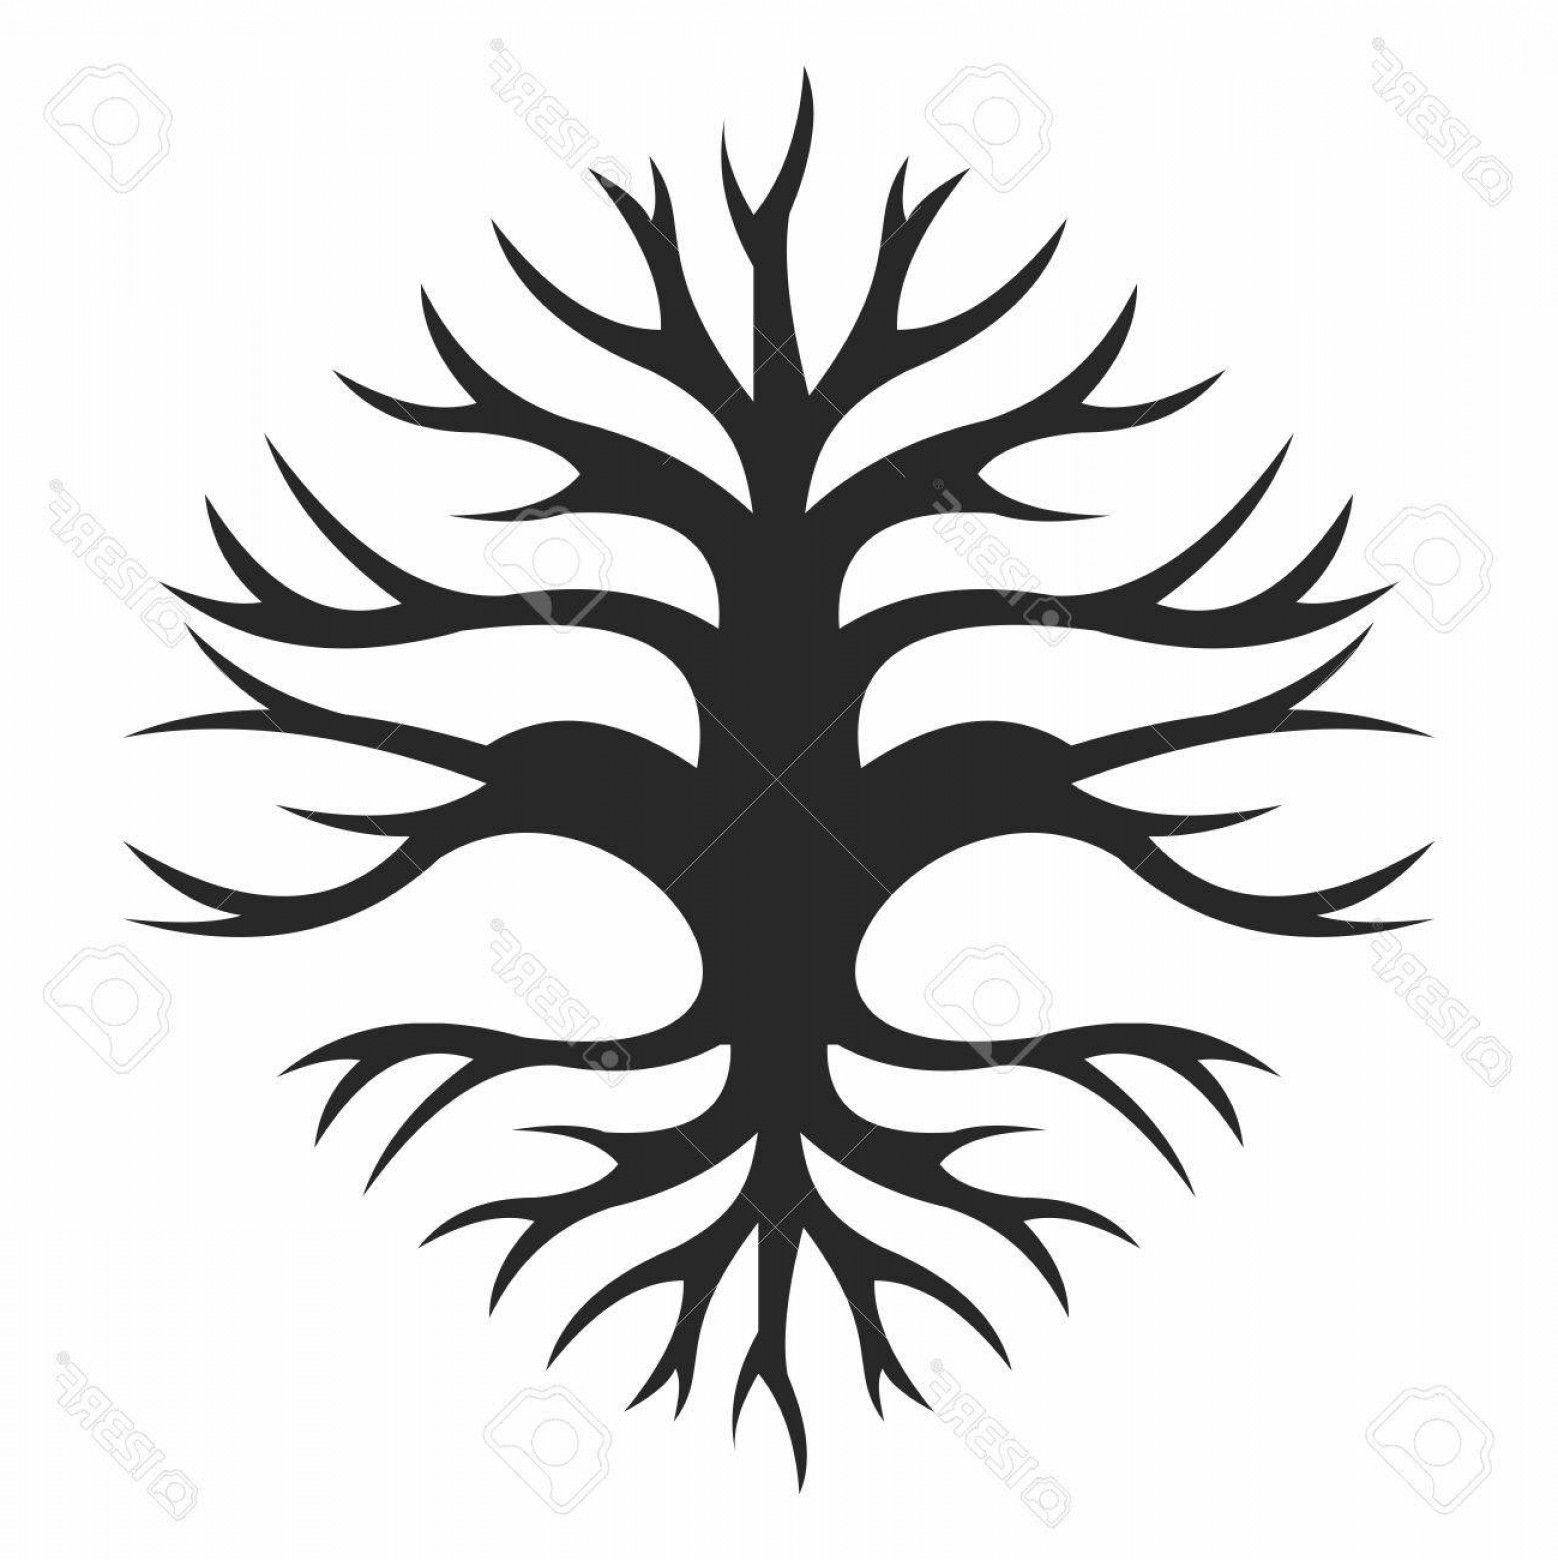 Tree Trunk Silhouette Vector: Photostock Vector Vector Abstract Creative Old Wisdom Tree Trunk Silhouette With Branches And Roots Isolated On White